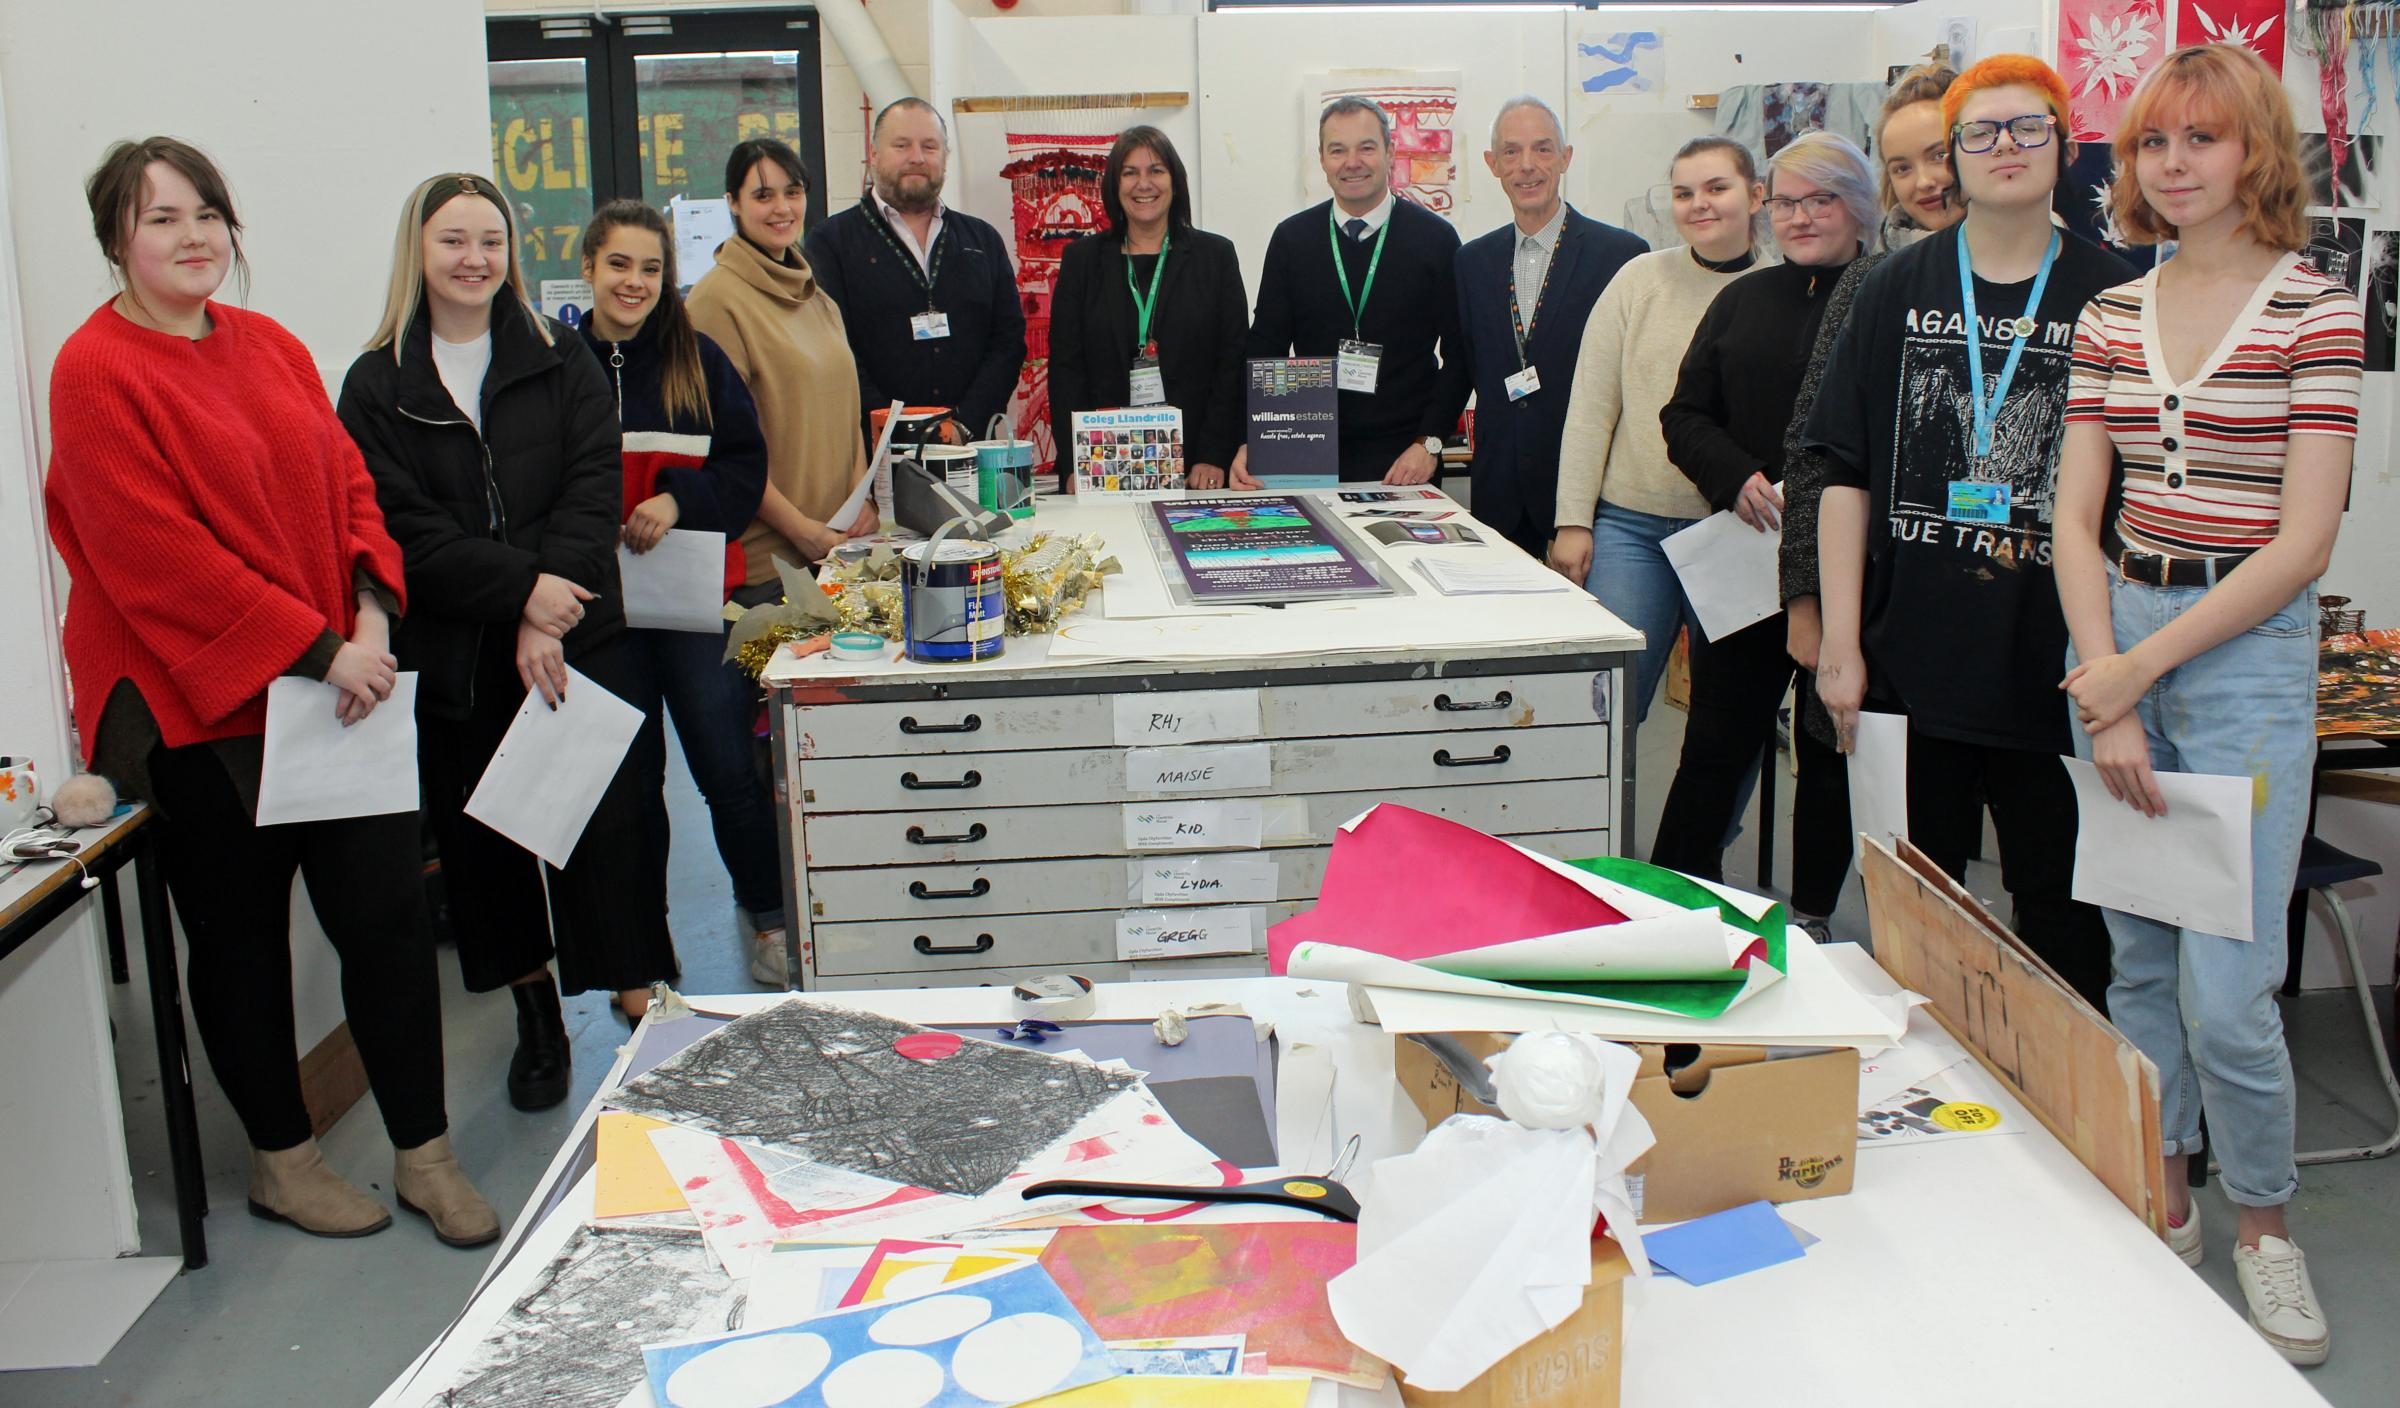 Jason Williams (centre right) with staff and students from Coleg Llandrillo's Arts' department